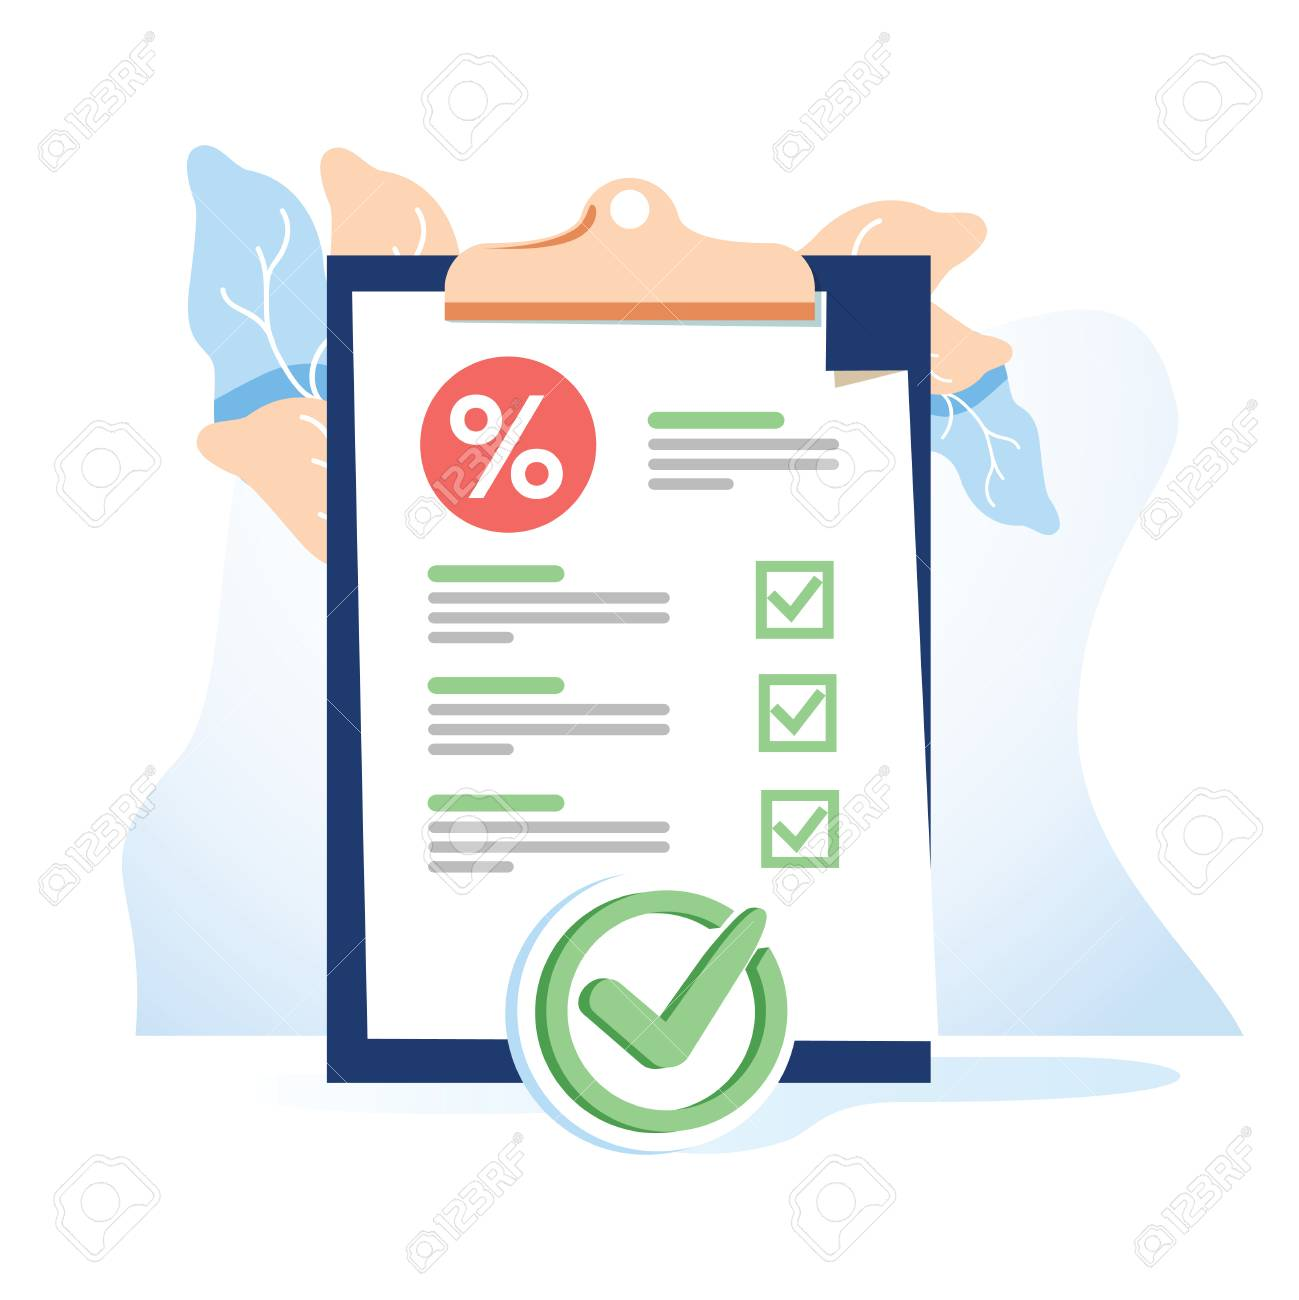 Vector flat illustration for web page or banner. Bank document of safe, dollars in a deposit or credit percent. Cashback finance, safe savings. Tax document paper sheet, business budget corporate cash - 127024660